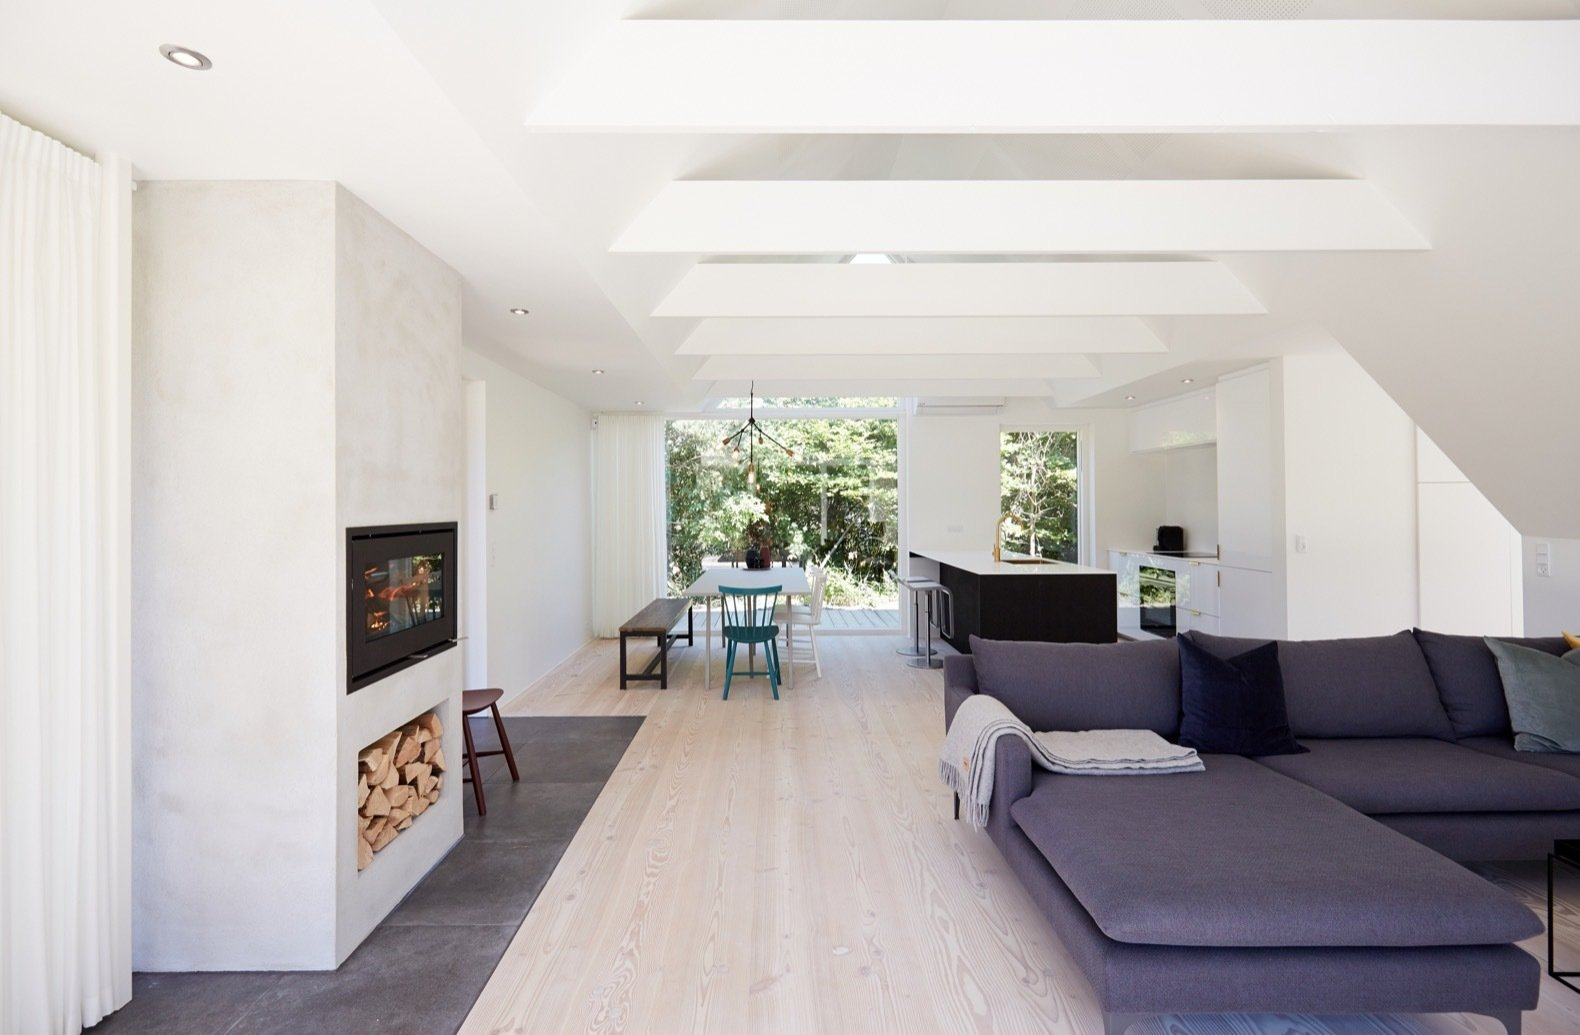 Living, Light Hardwood, Wood Burning, Chair, Table, Sectional, Stools, Pendant, Recessed, and Bench Modern Danish design has informed the minimalist interior, which is dressed in cozy fabrics and a muted natural palette.    Best Living Bench Stools Photos from Revel in Scandinavian Design at This Seaside Holiday Home